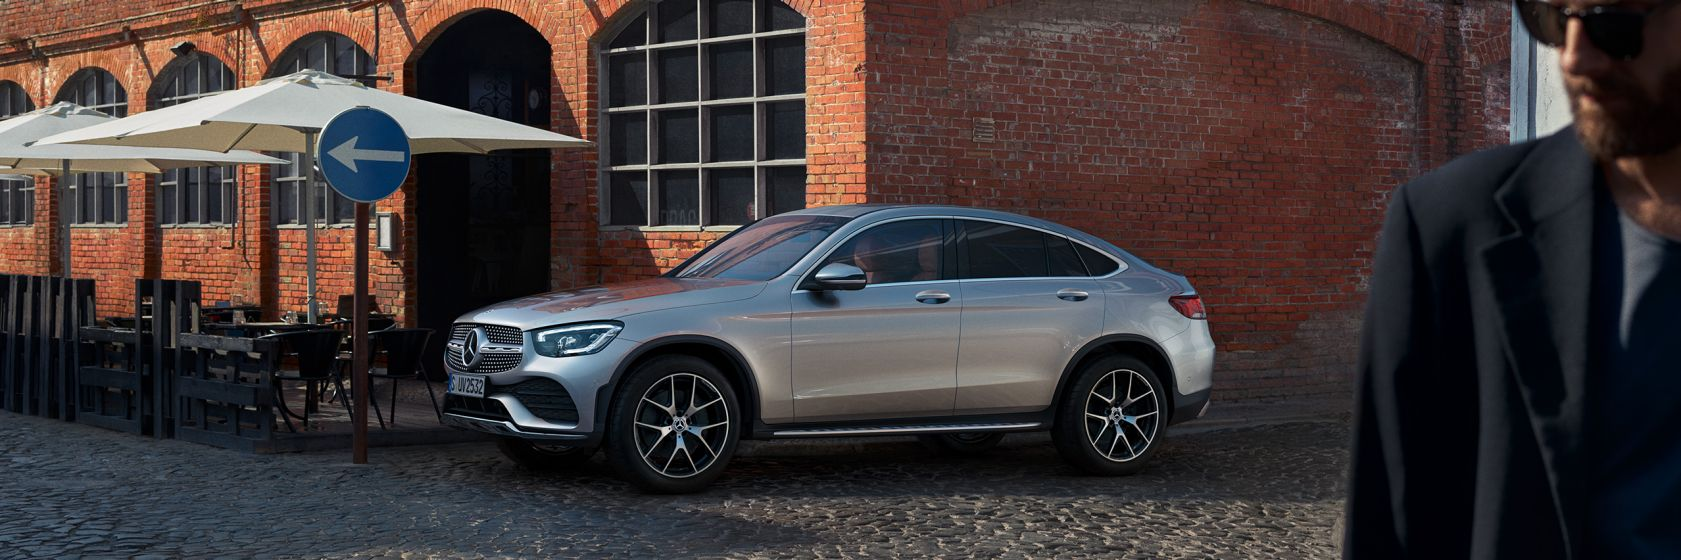 Дизайн Mercedes–Benz GLC Coupe